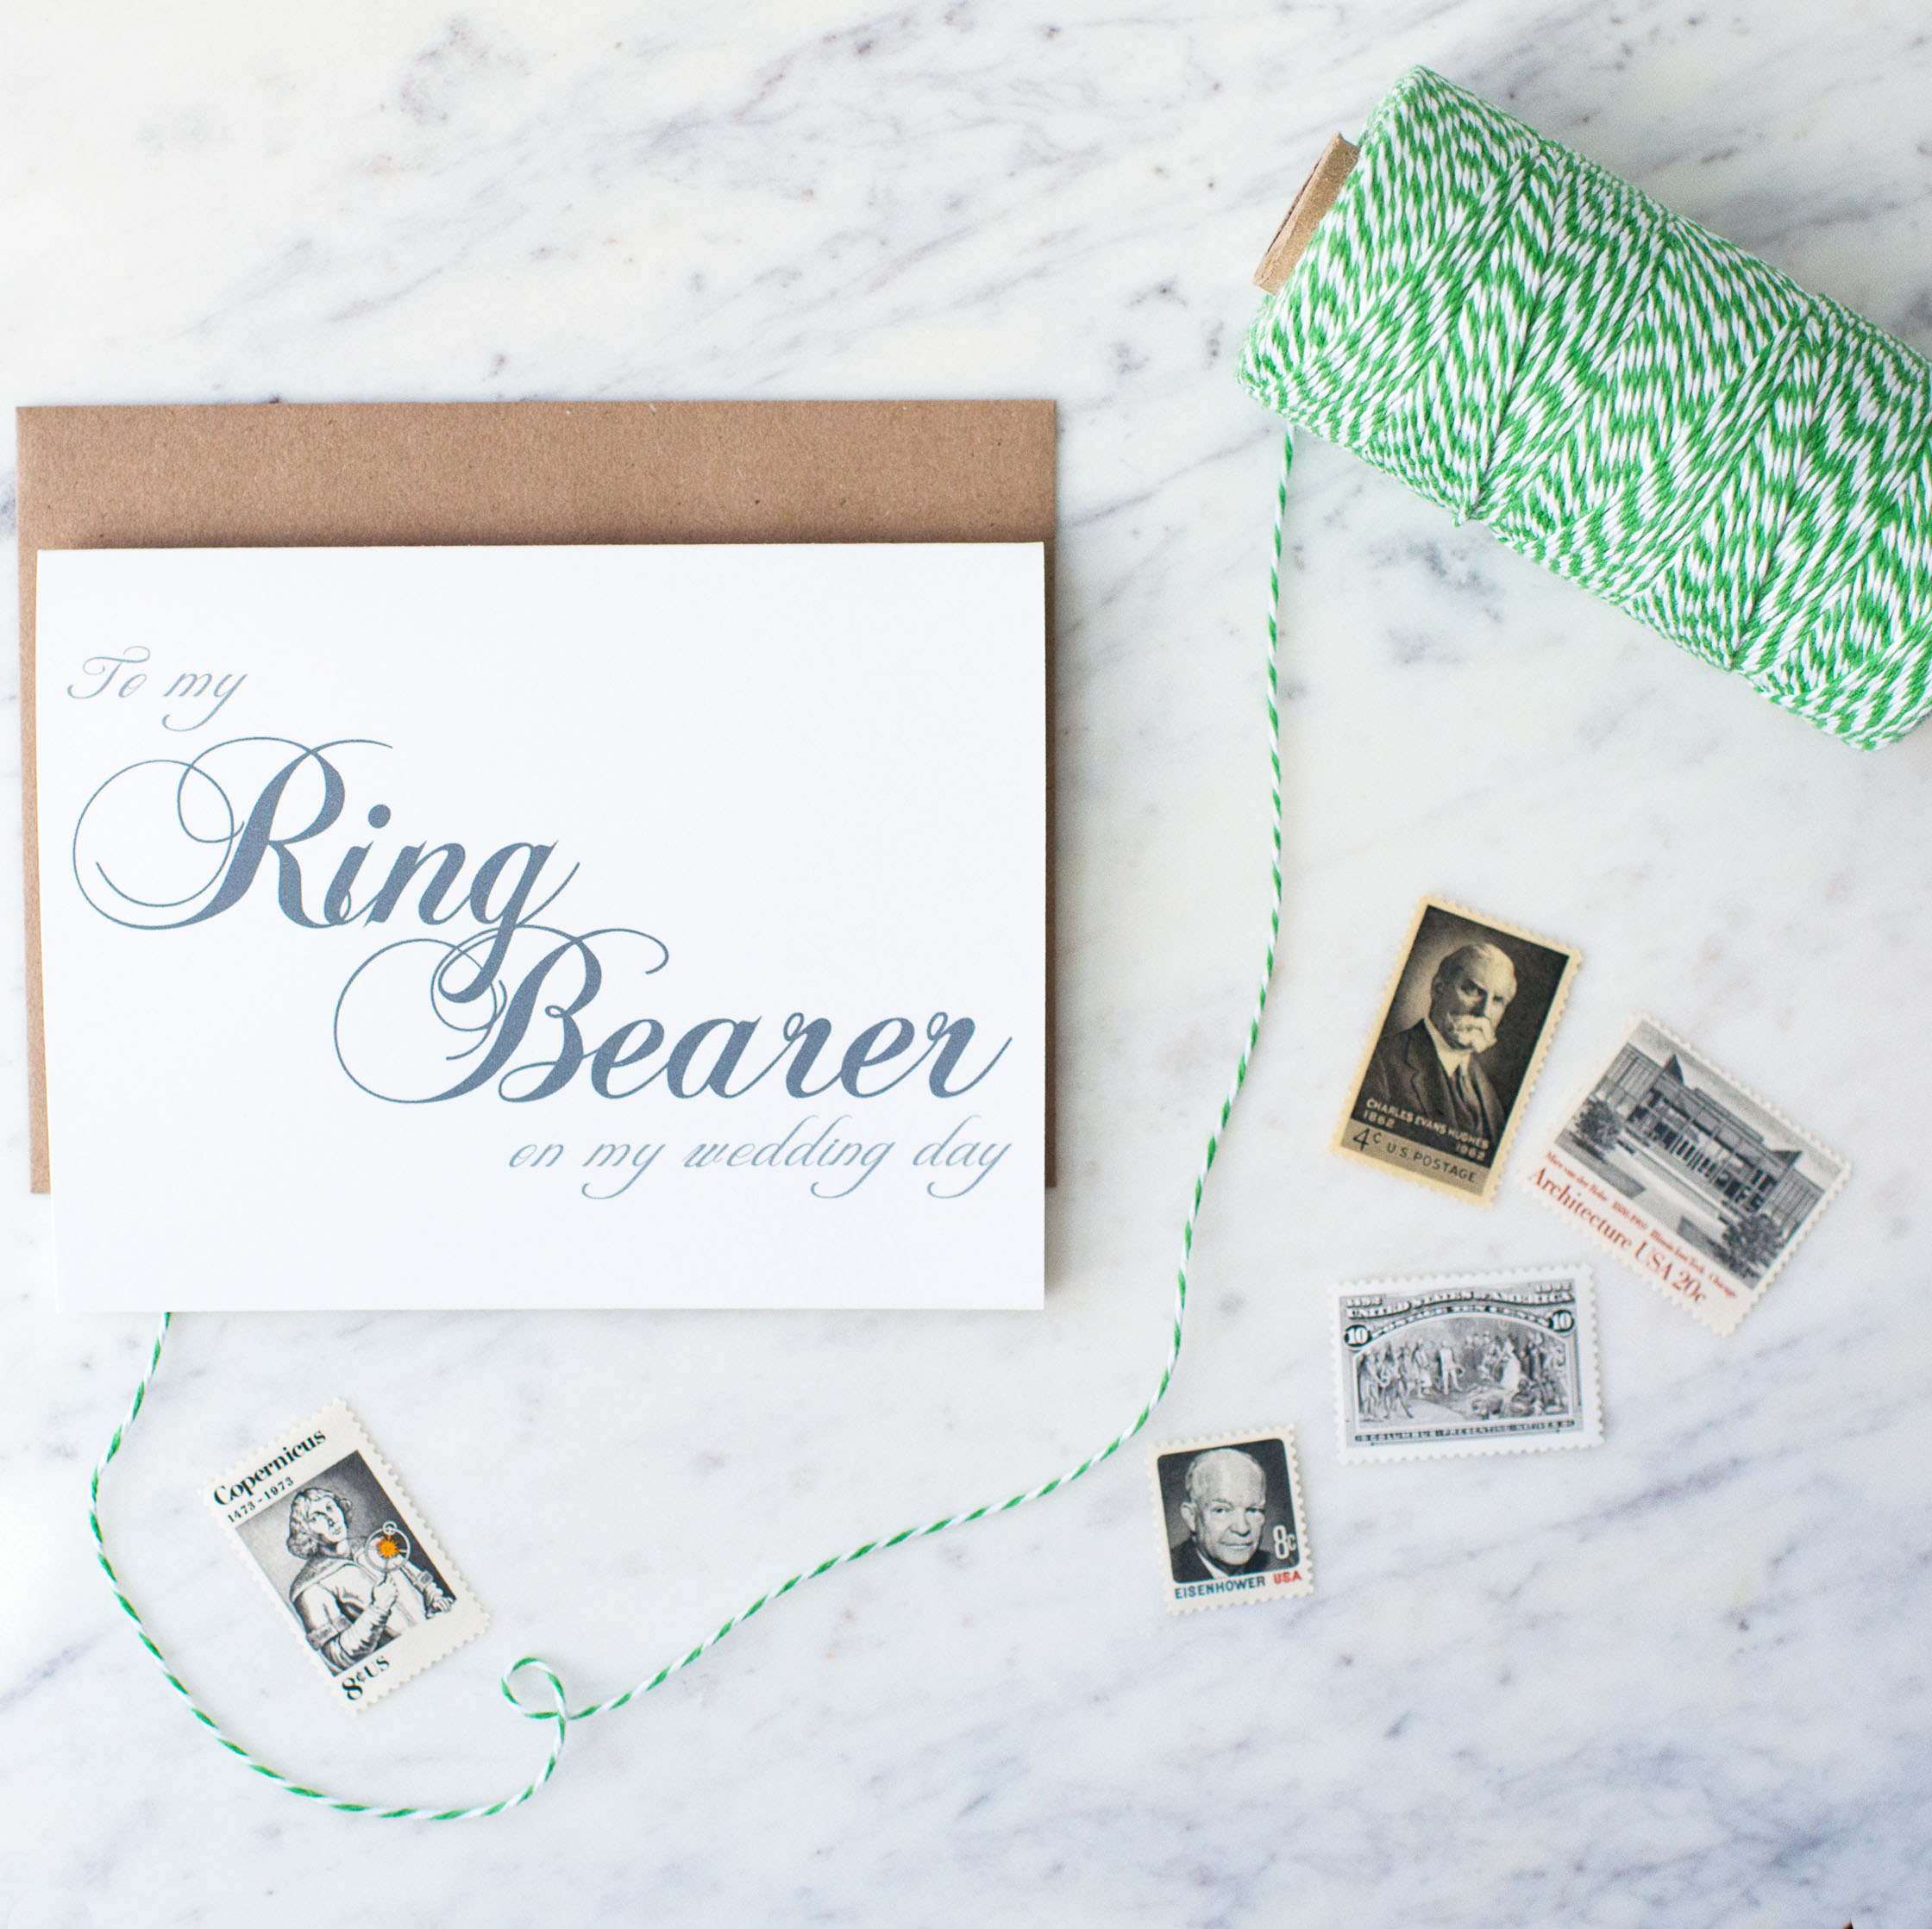 To My Ring Bearer On My Wedding Day Card